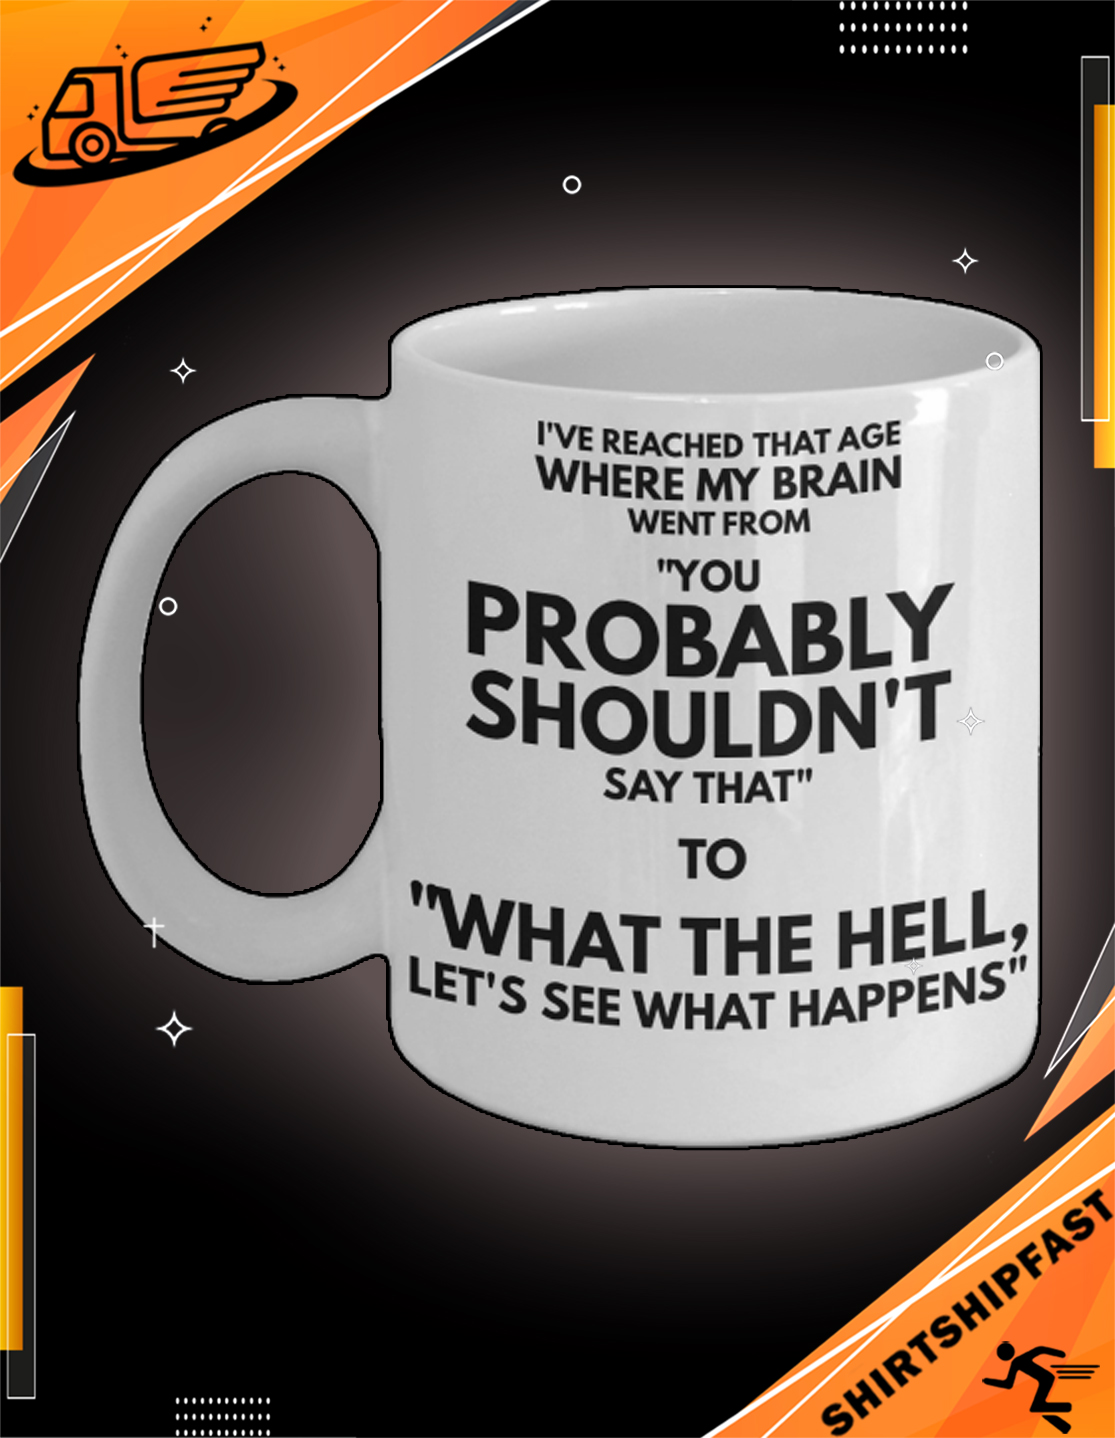 I've reached that age where my brain when from mug - Picture 3